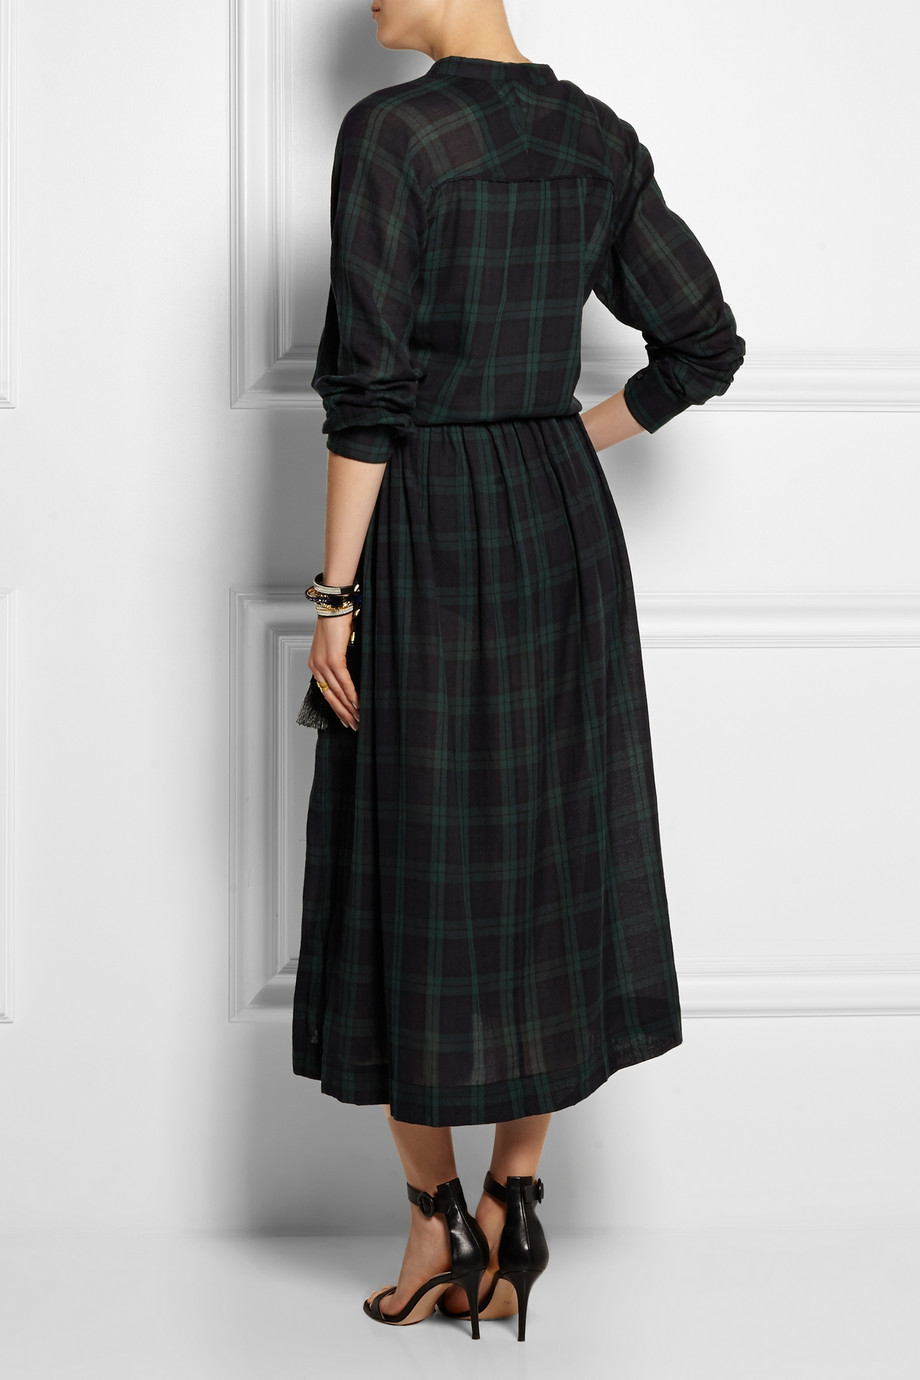 lyst toile isabel marant ivah plaid cotton midi dress in green. Black Bedroom Furniture Sets. Home Design Ideas